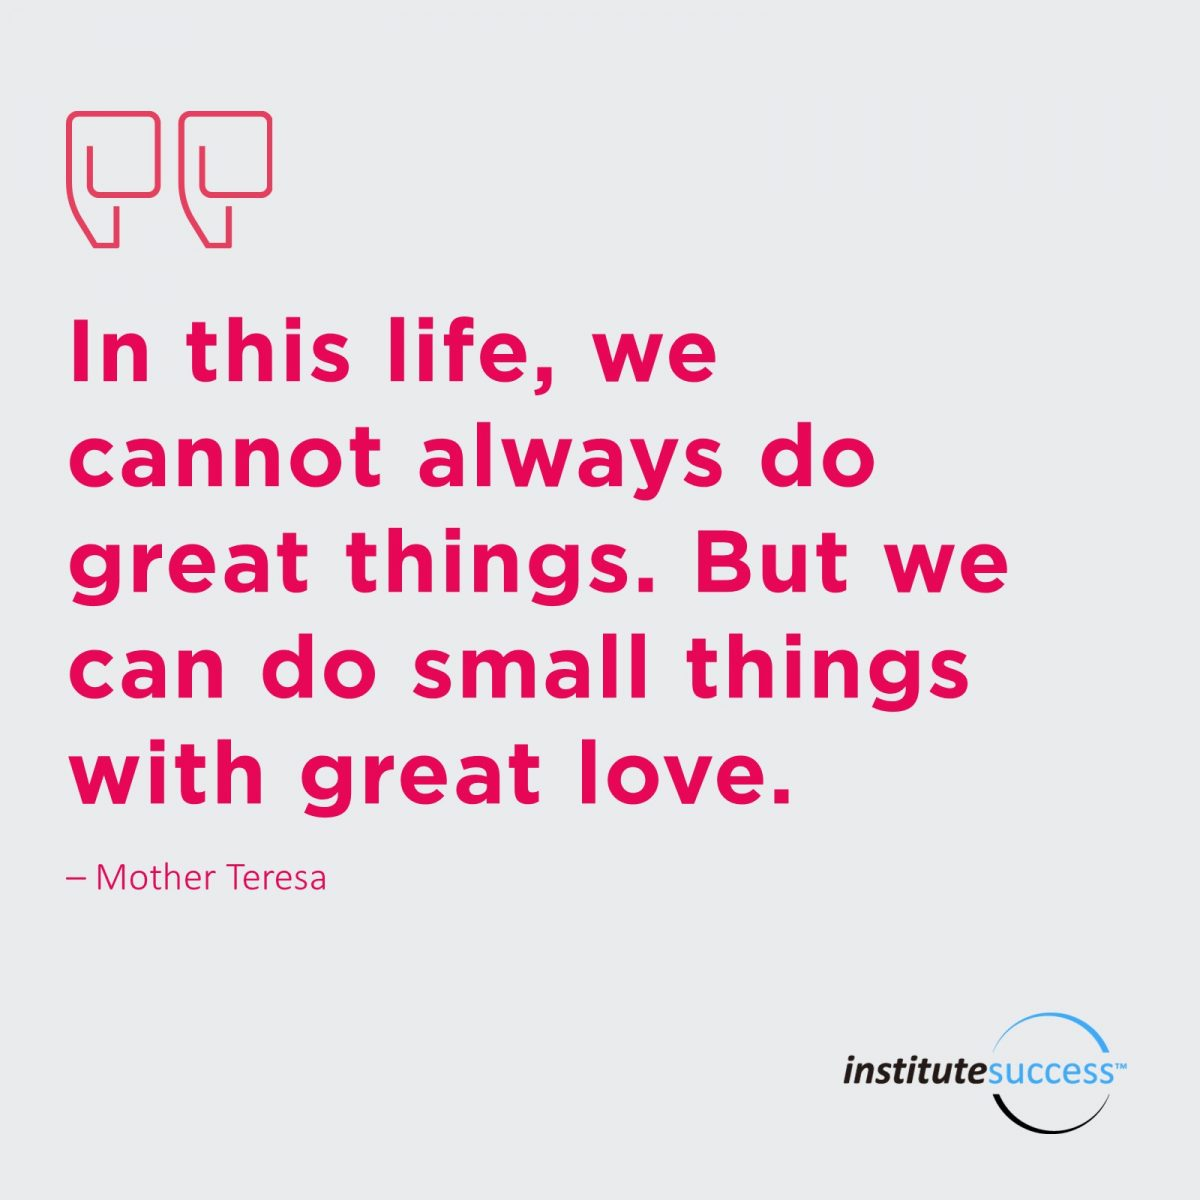 In this life we cannot always do great things. But we can do small things with great love. Mother Teresa